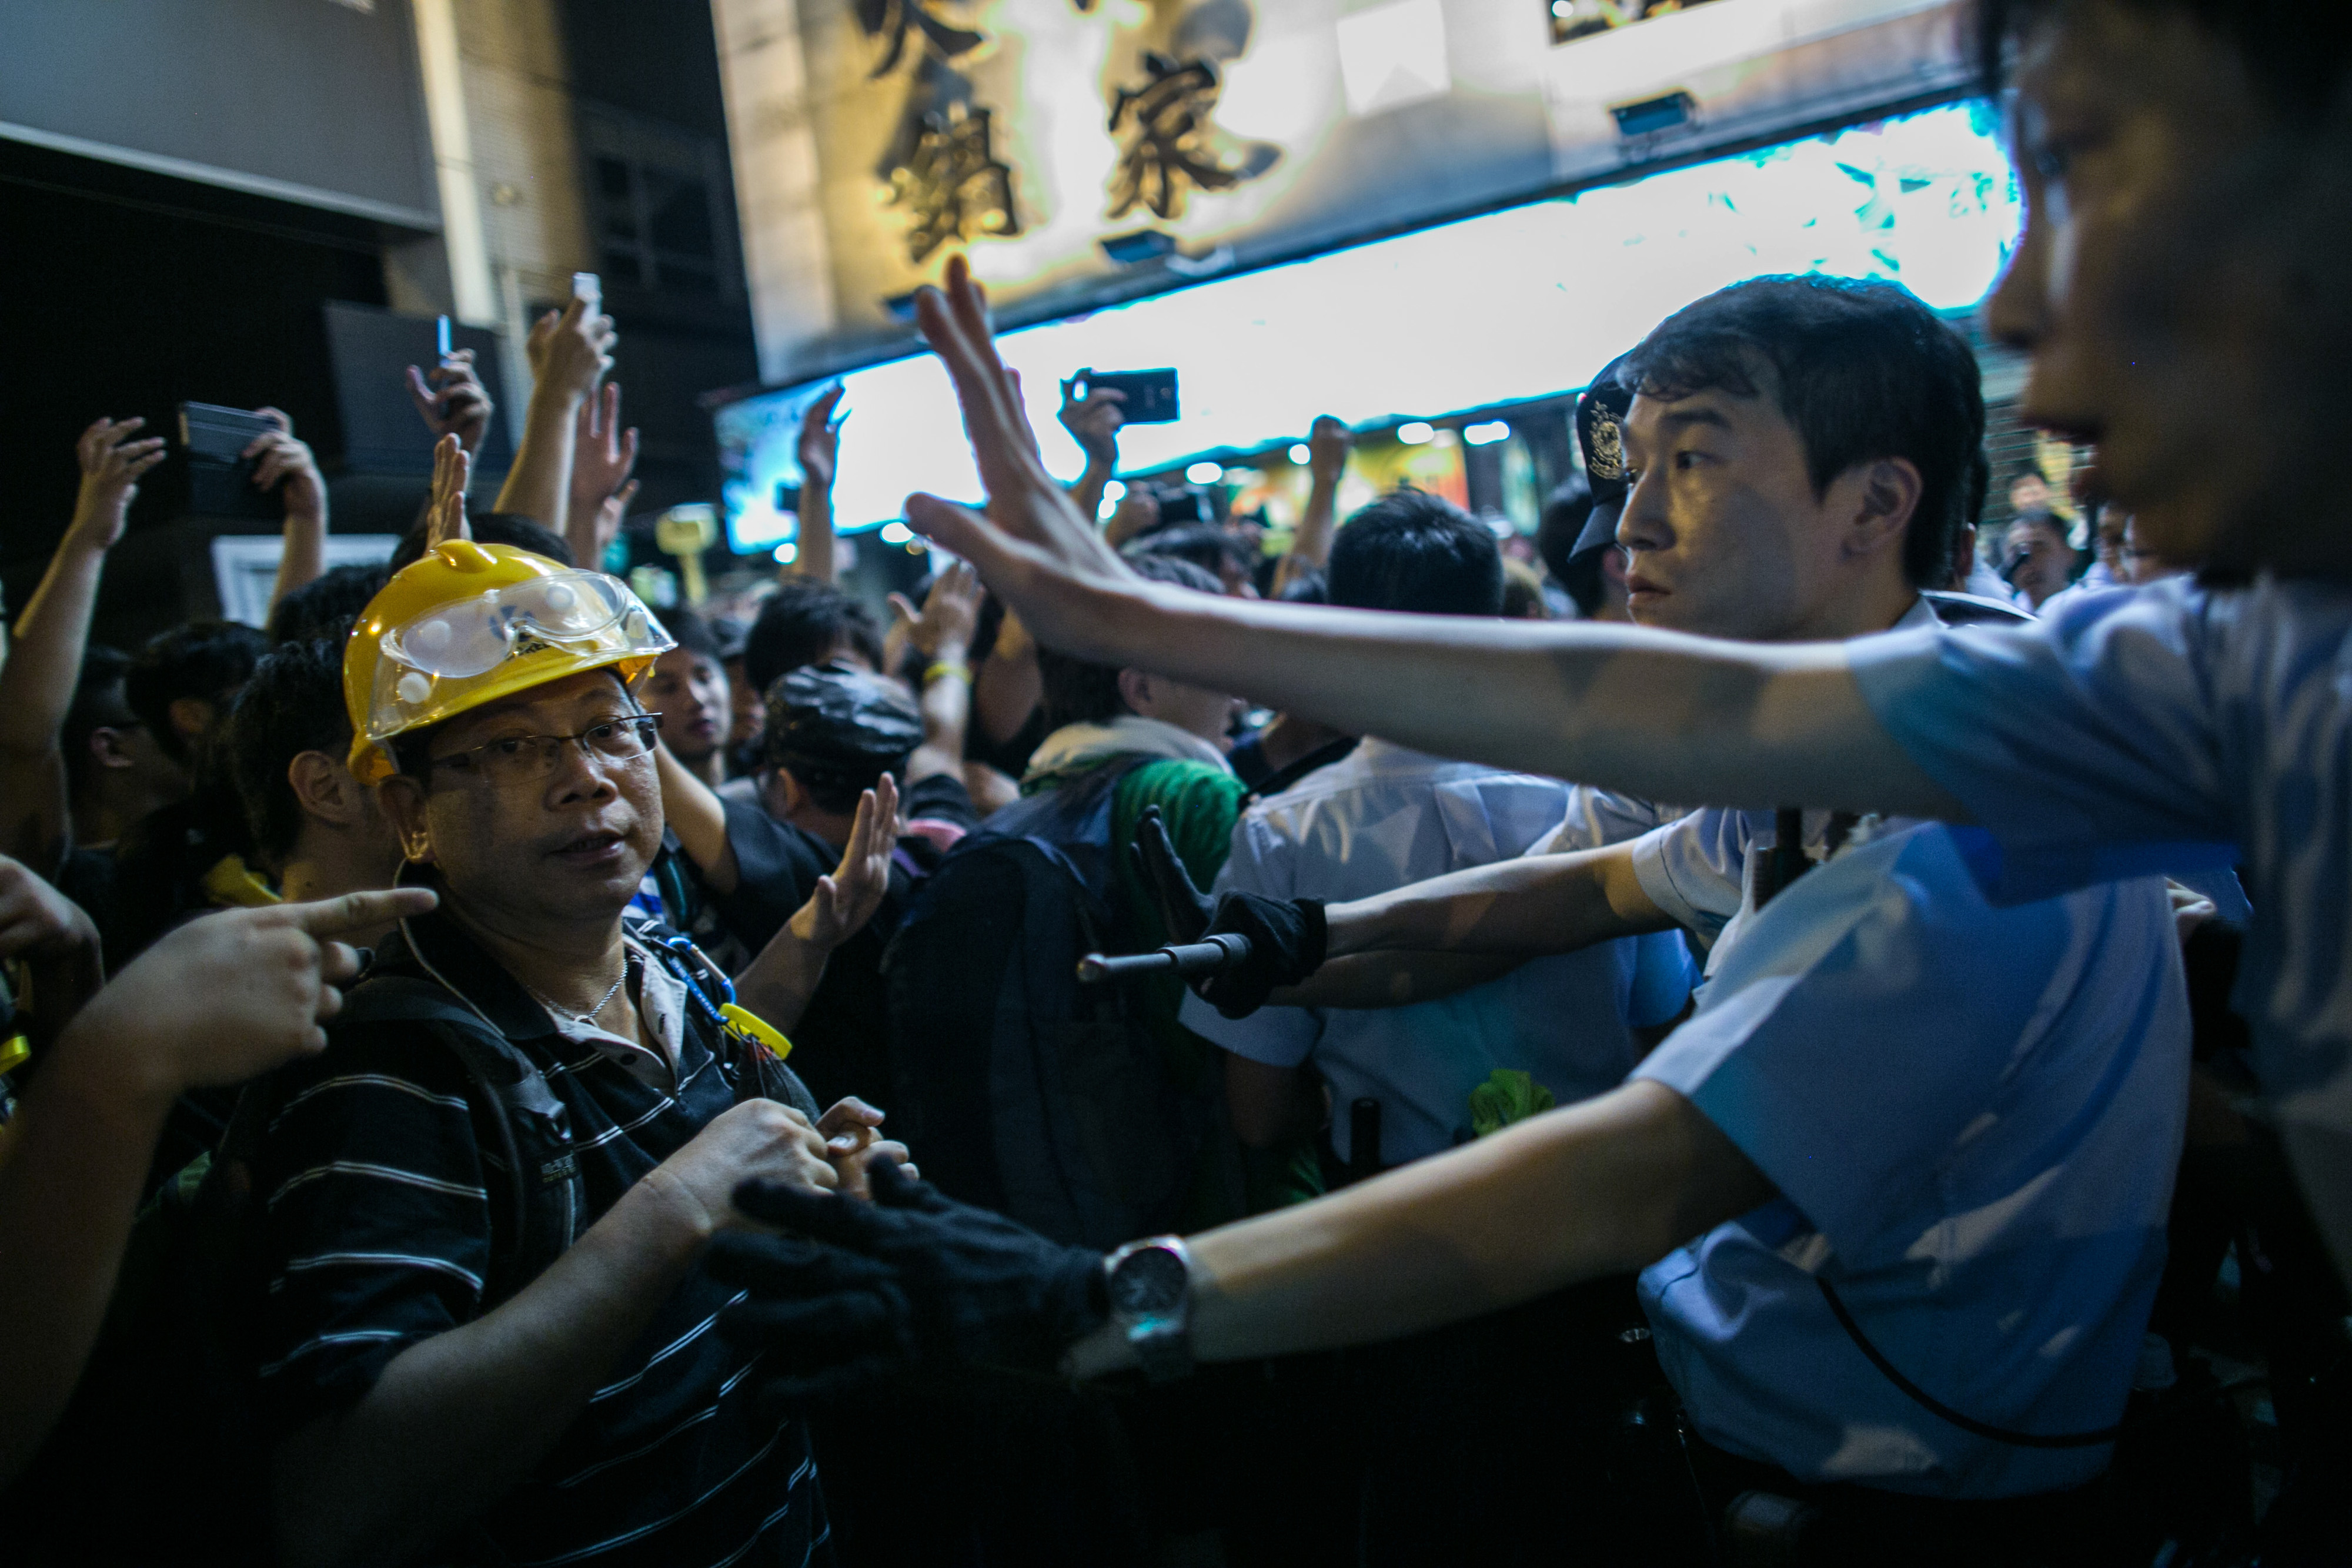 Hong Kong lawkmakers urge end to protest as deadline looms   World ...